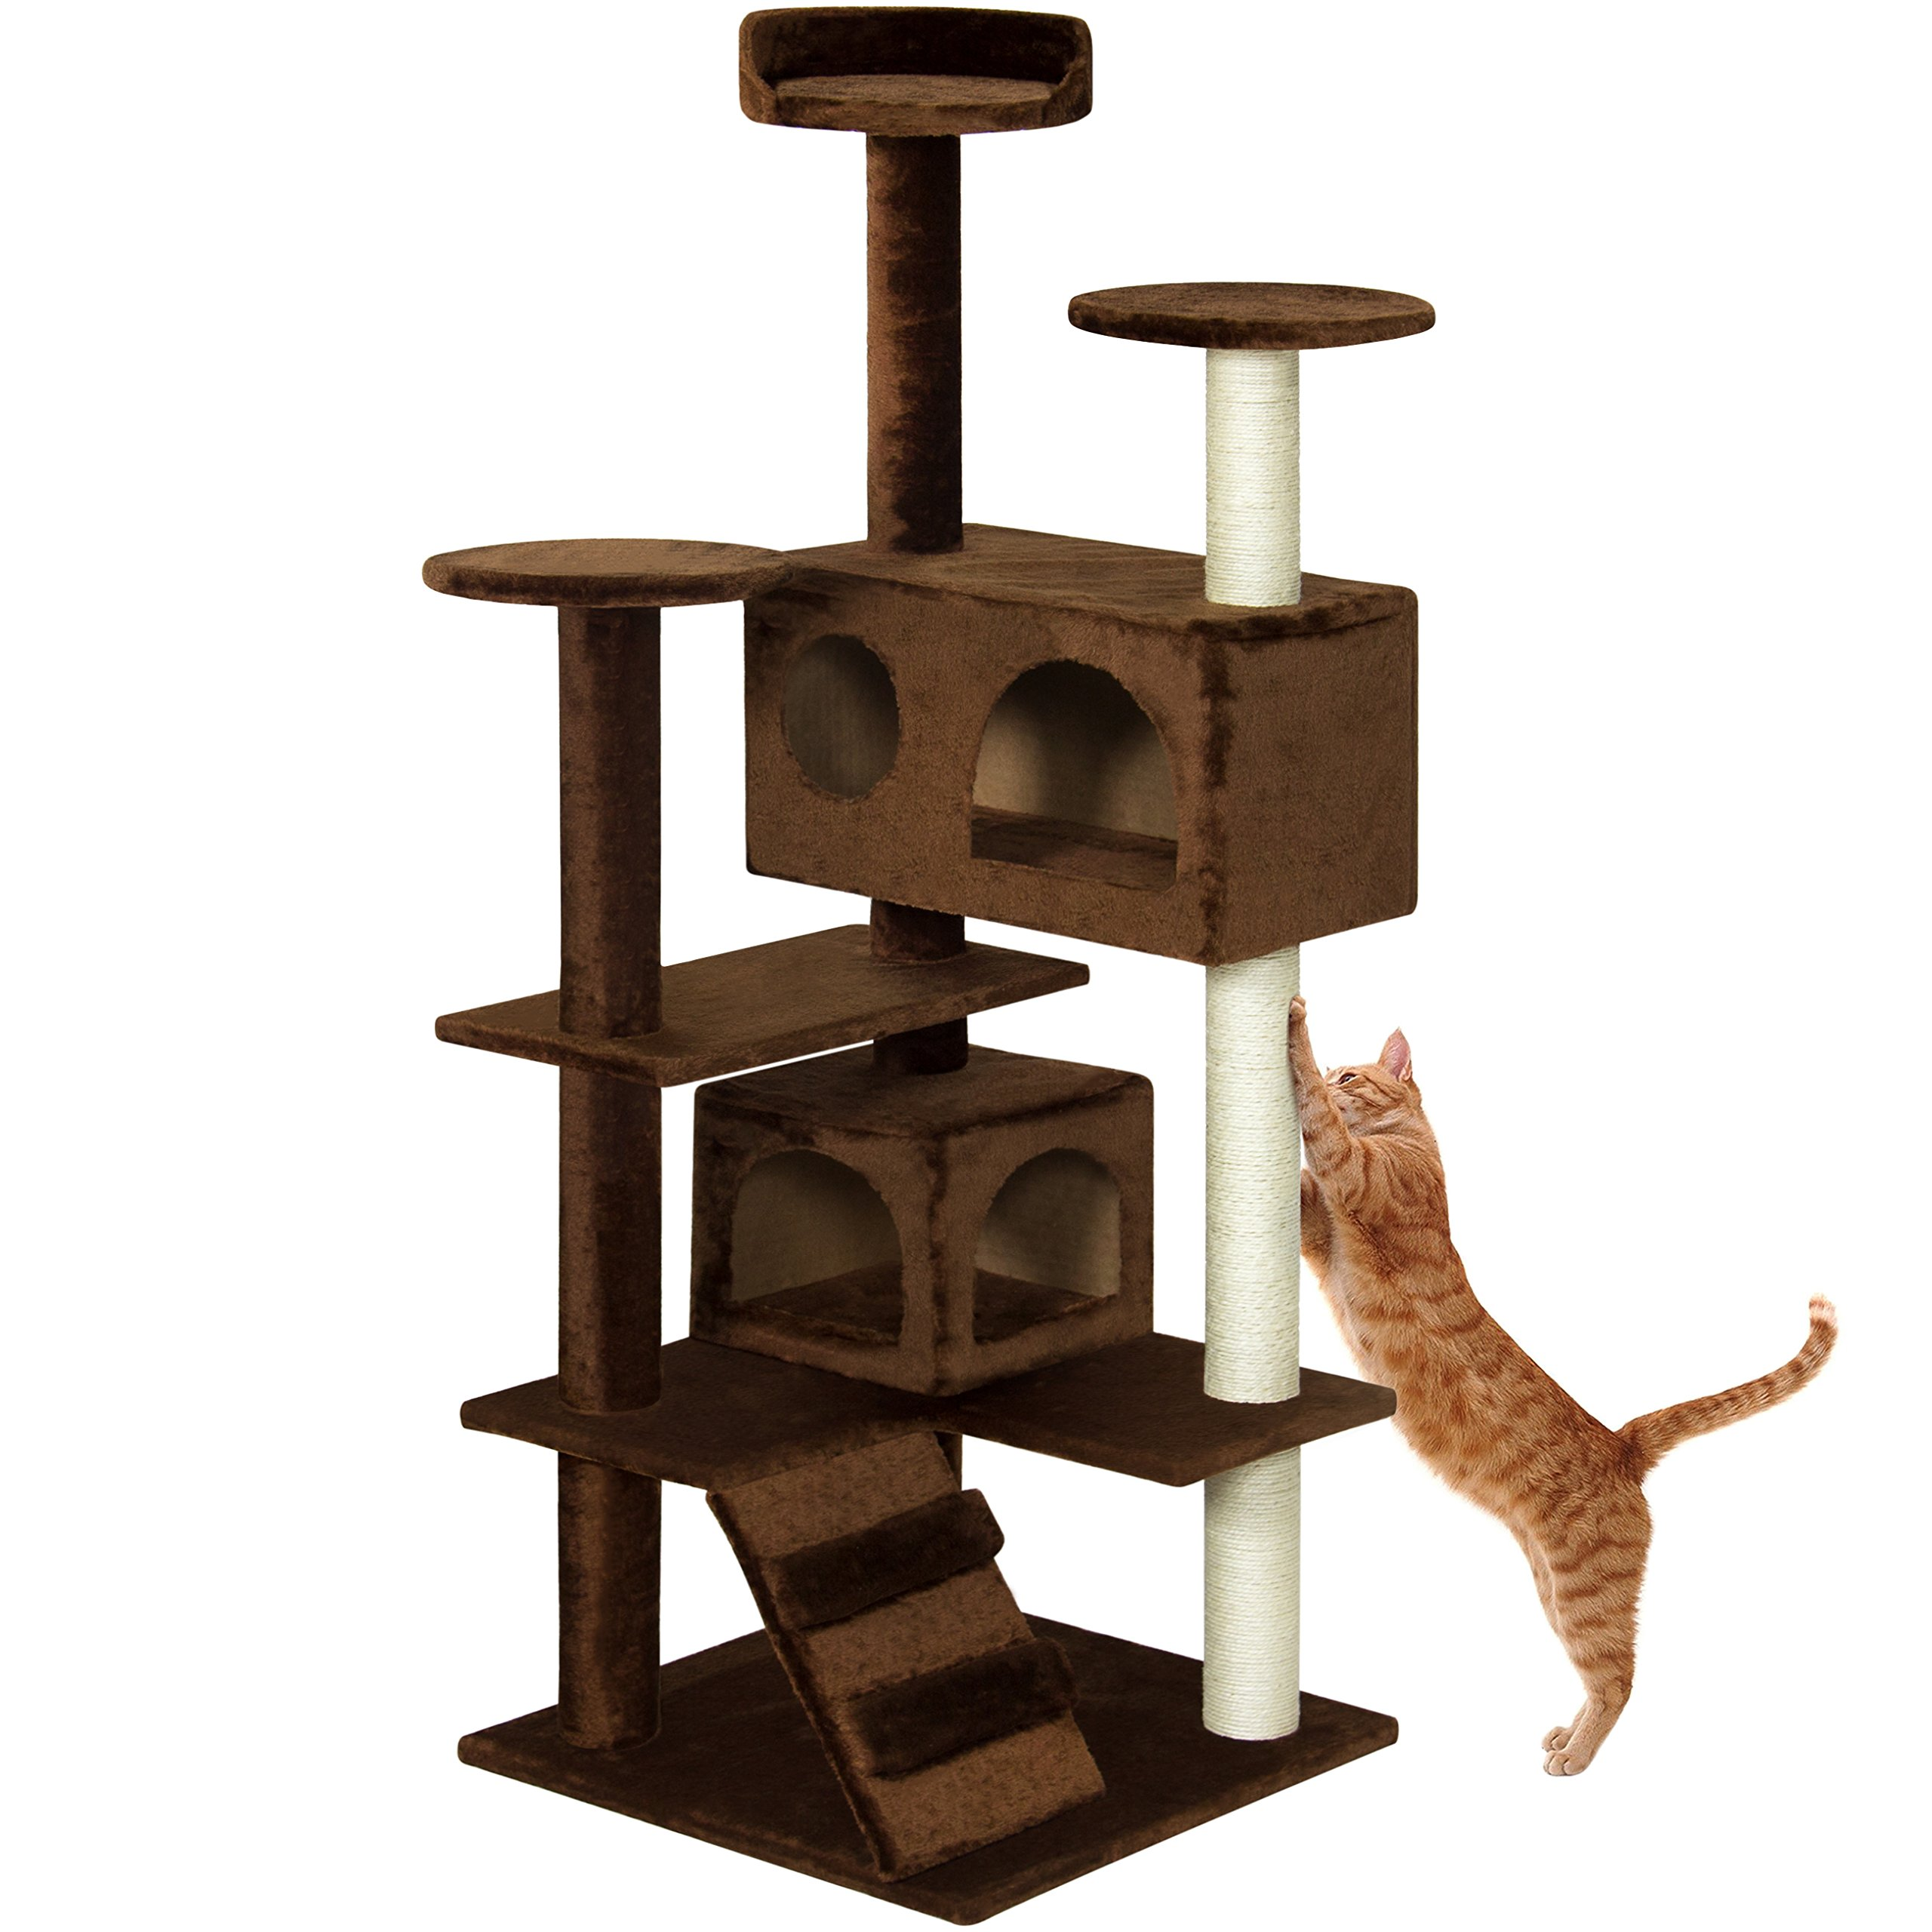 Best Choice Products 53in Multi-Level Cat Tree Scratcher Condo Tower - Brown by Best Choice Products